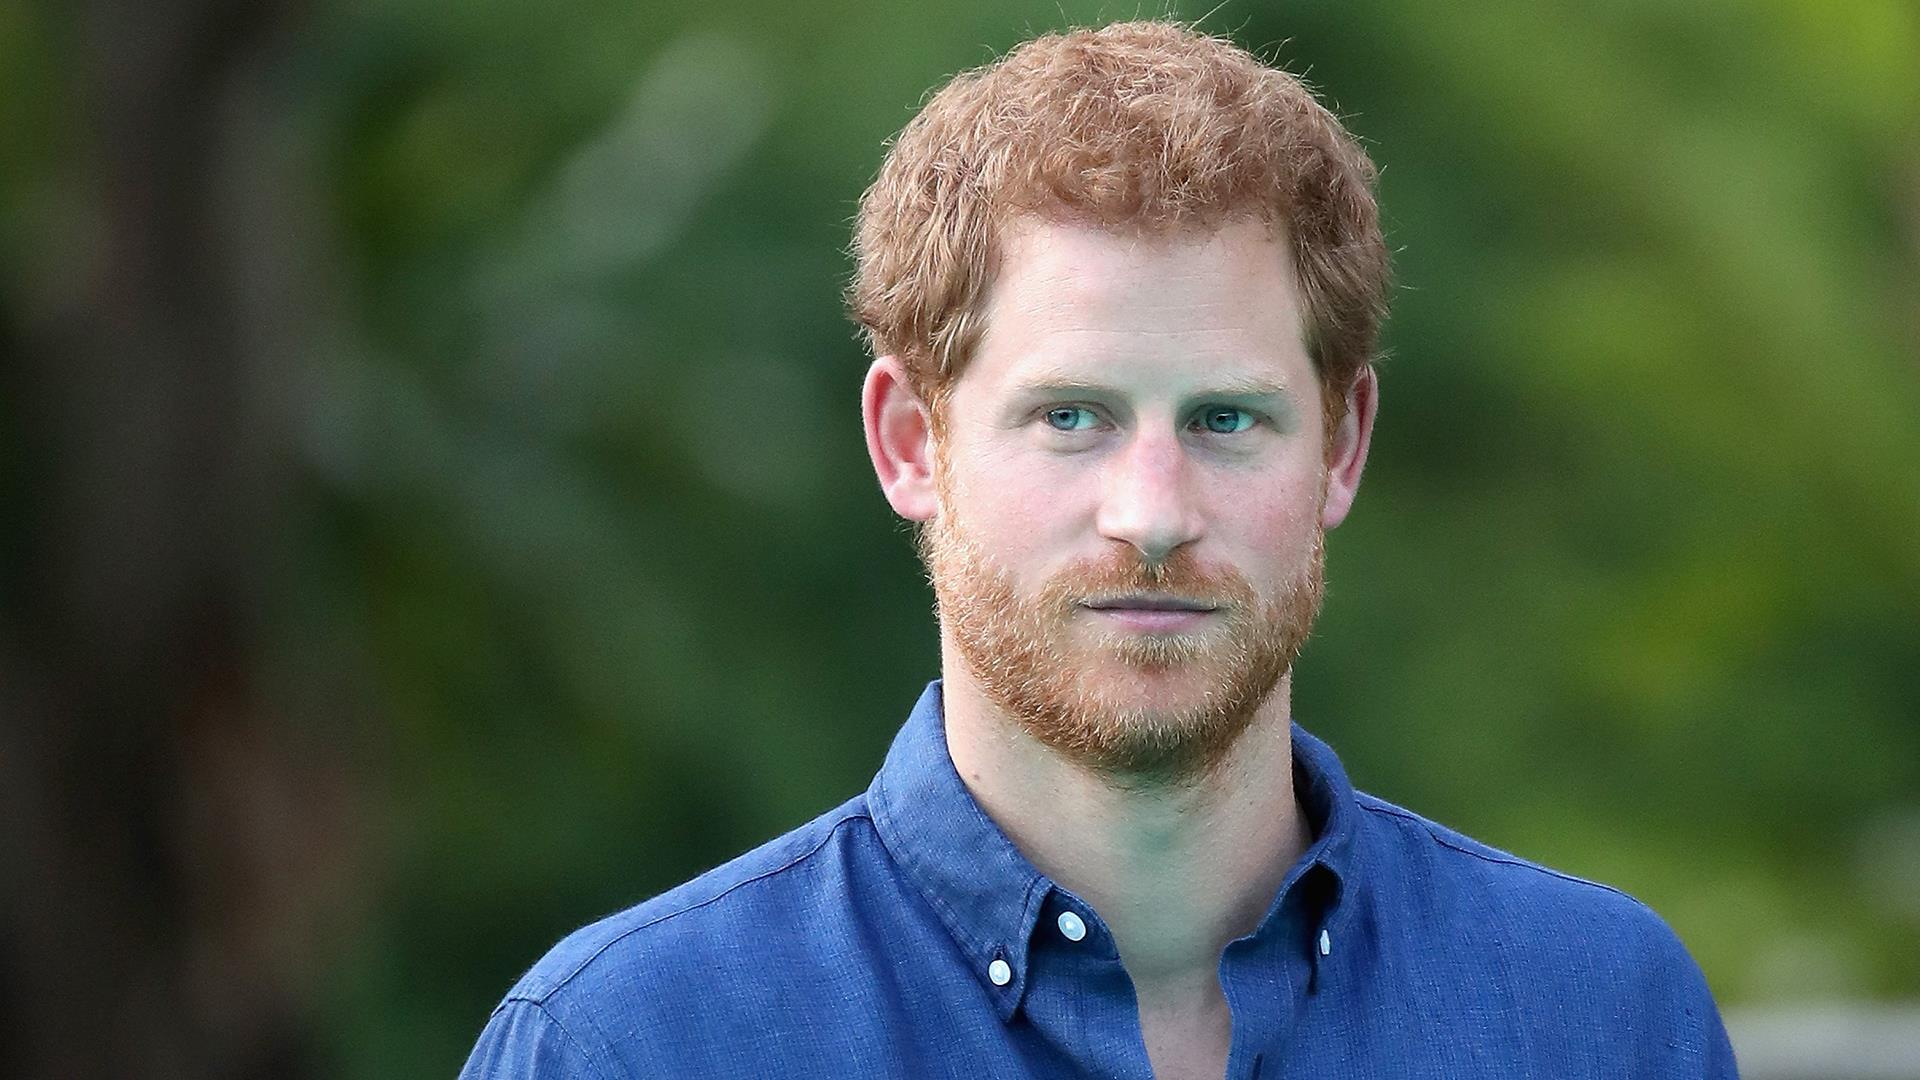 Prince harry his problems and his